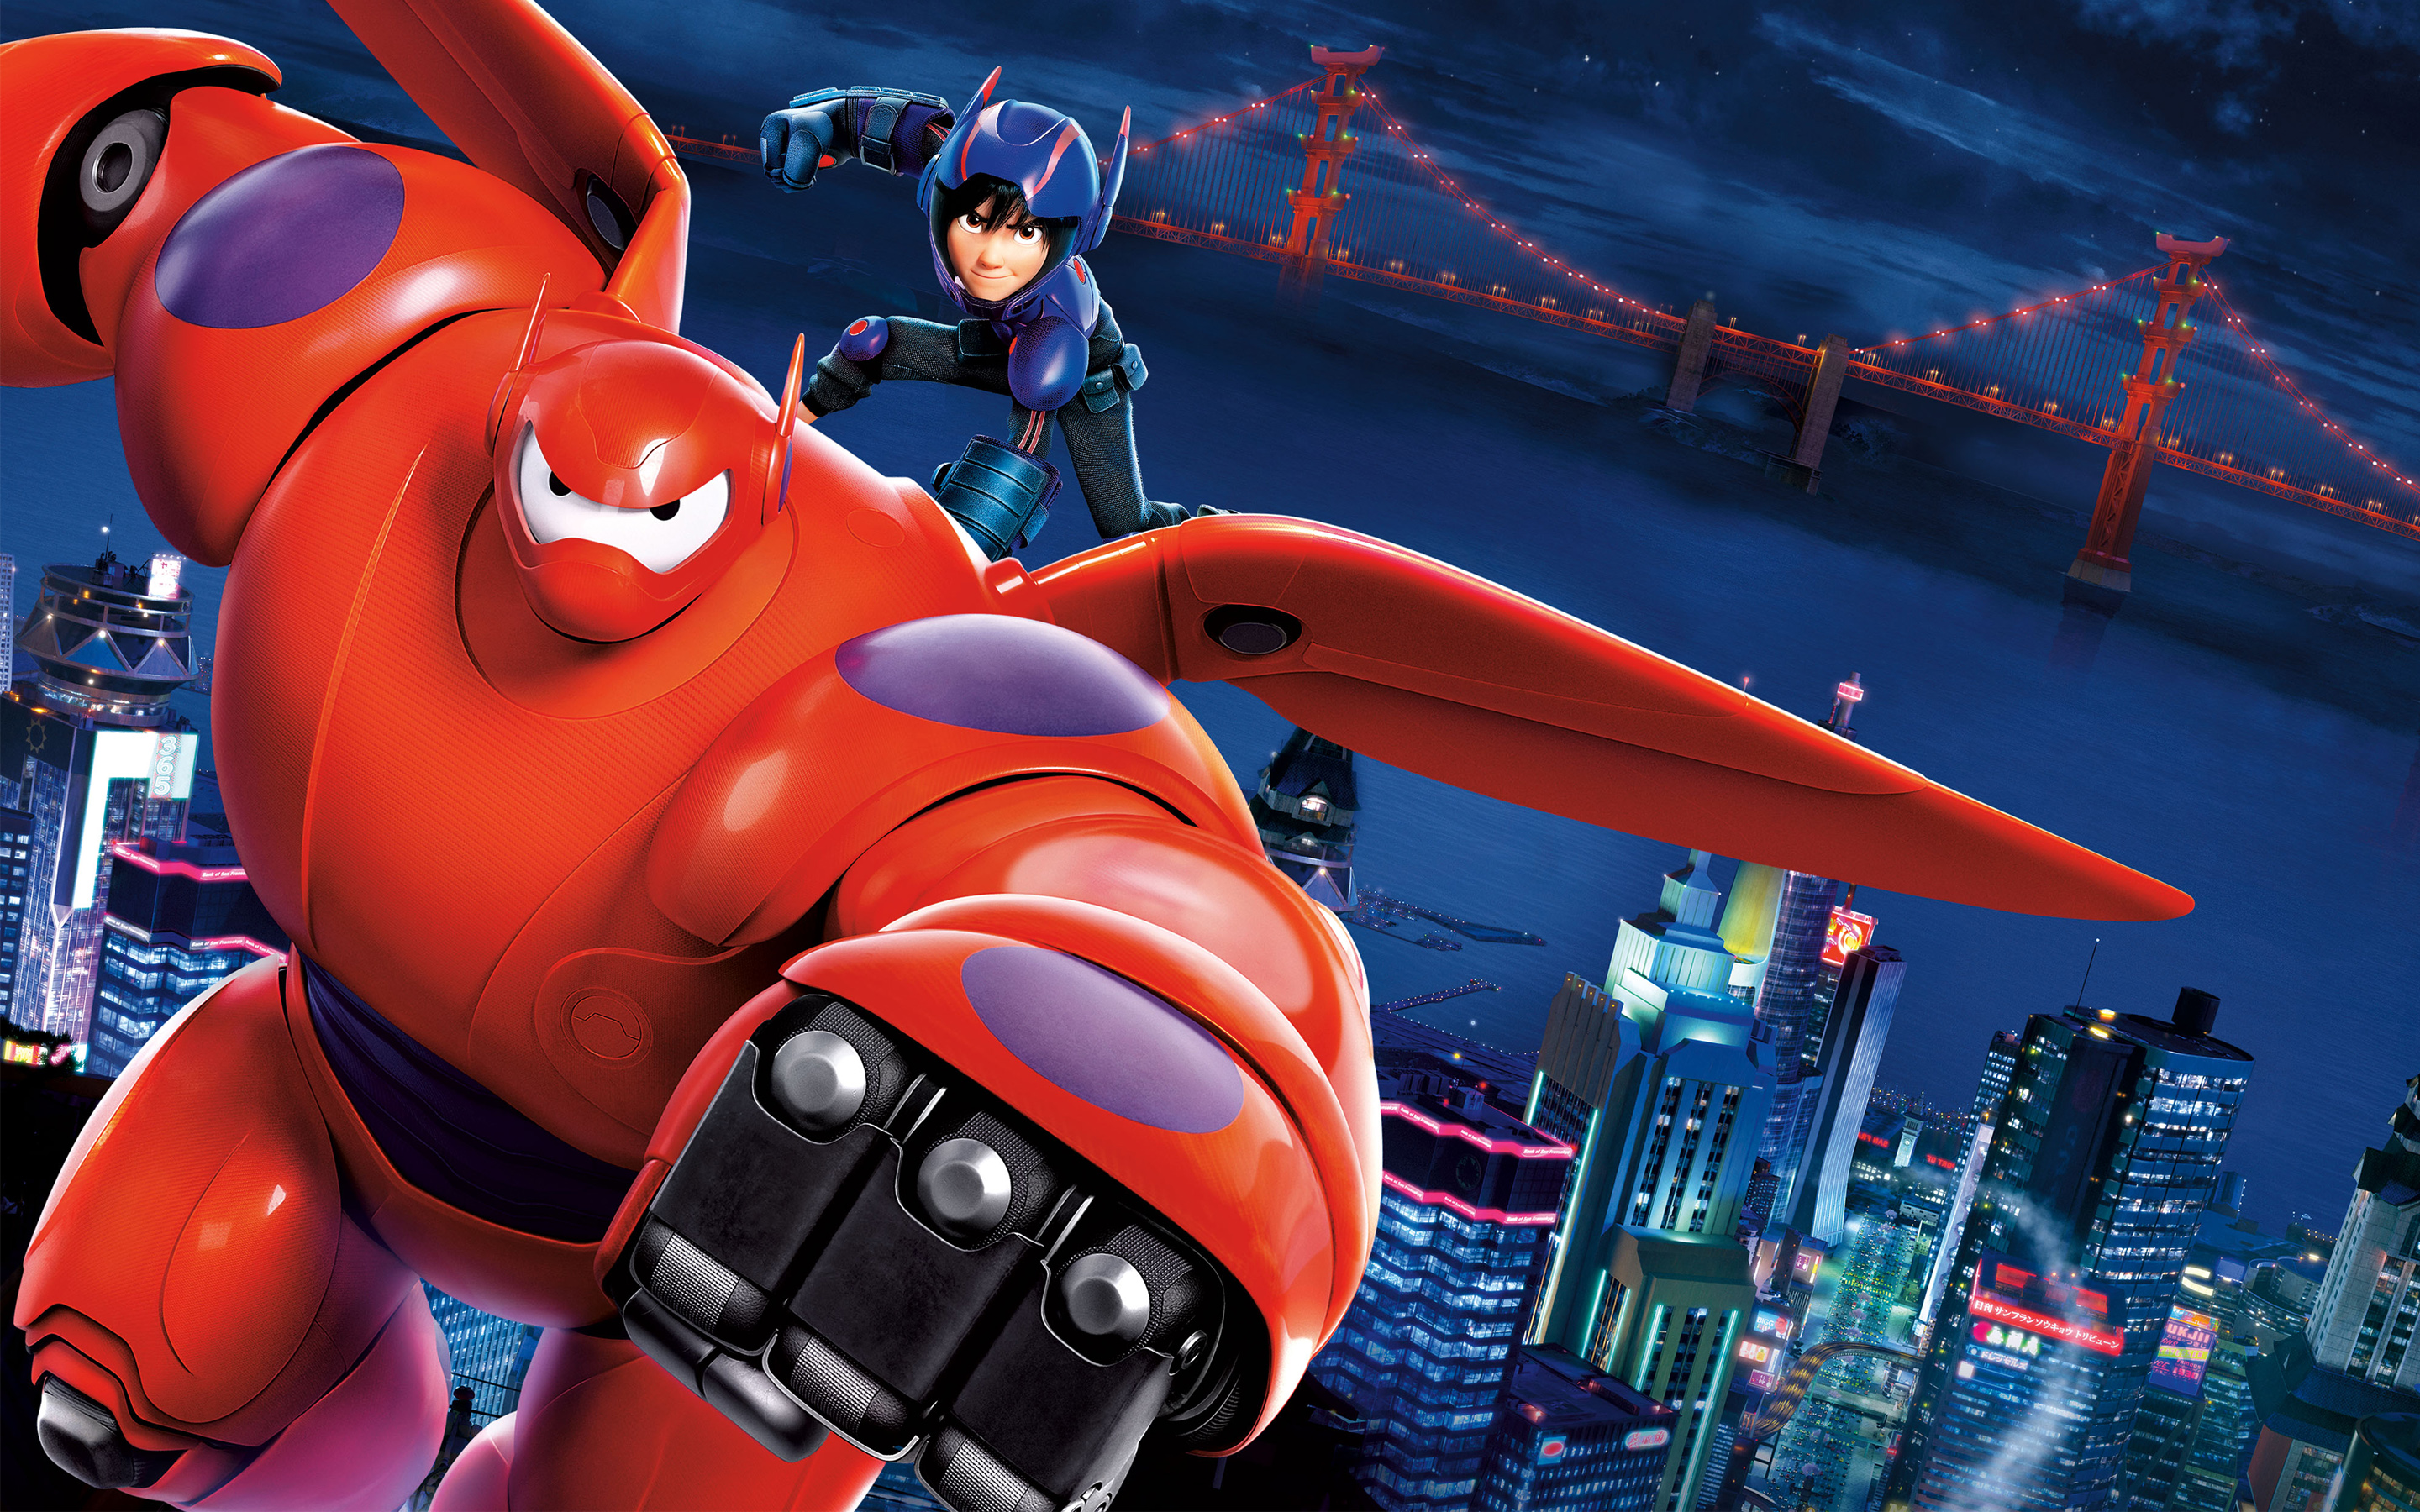 Big Hero 6 Wallpapers Pictures Images 2880x1800